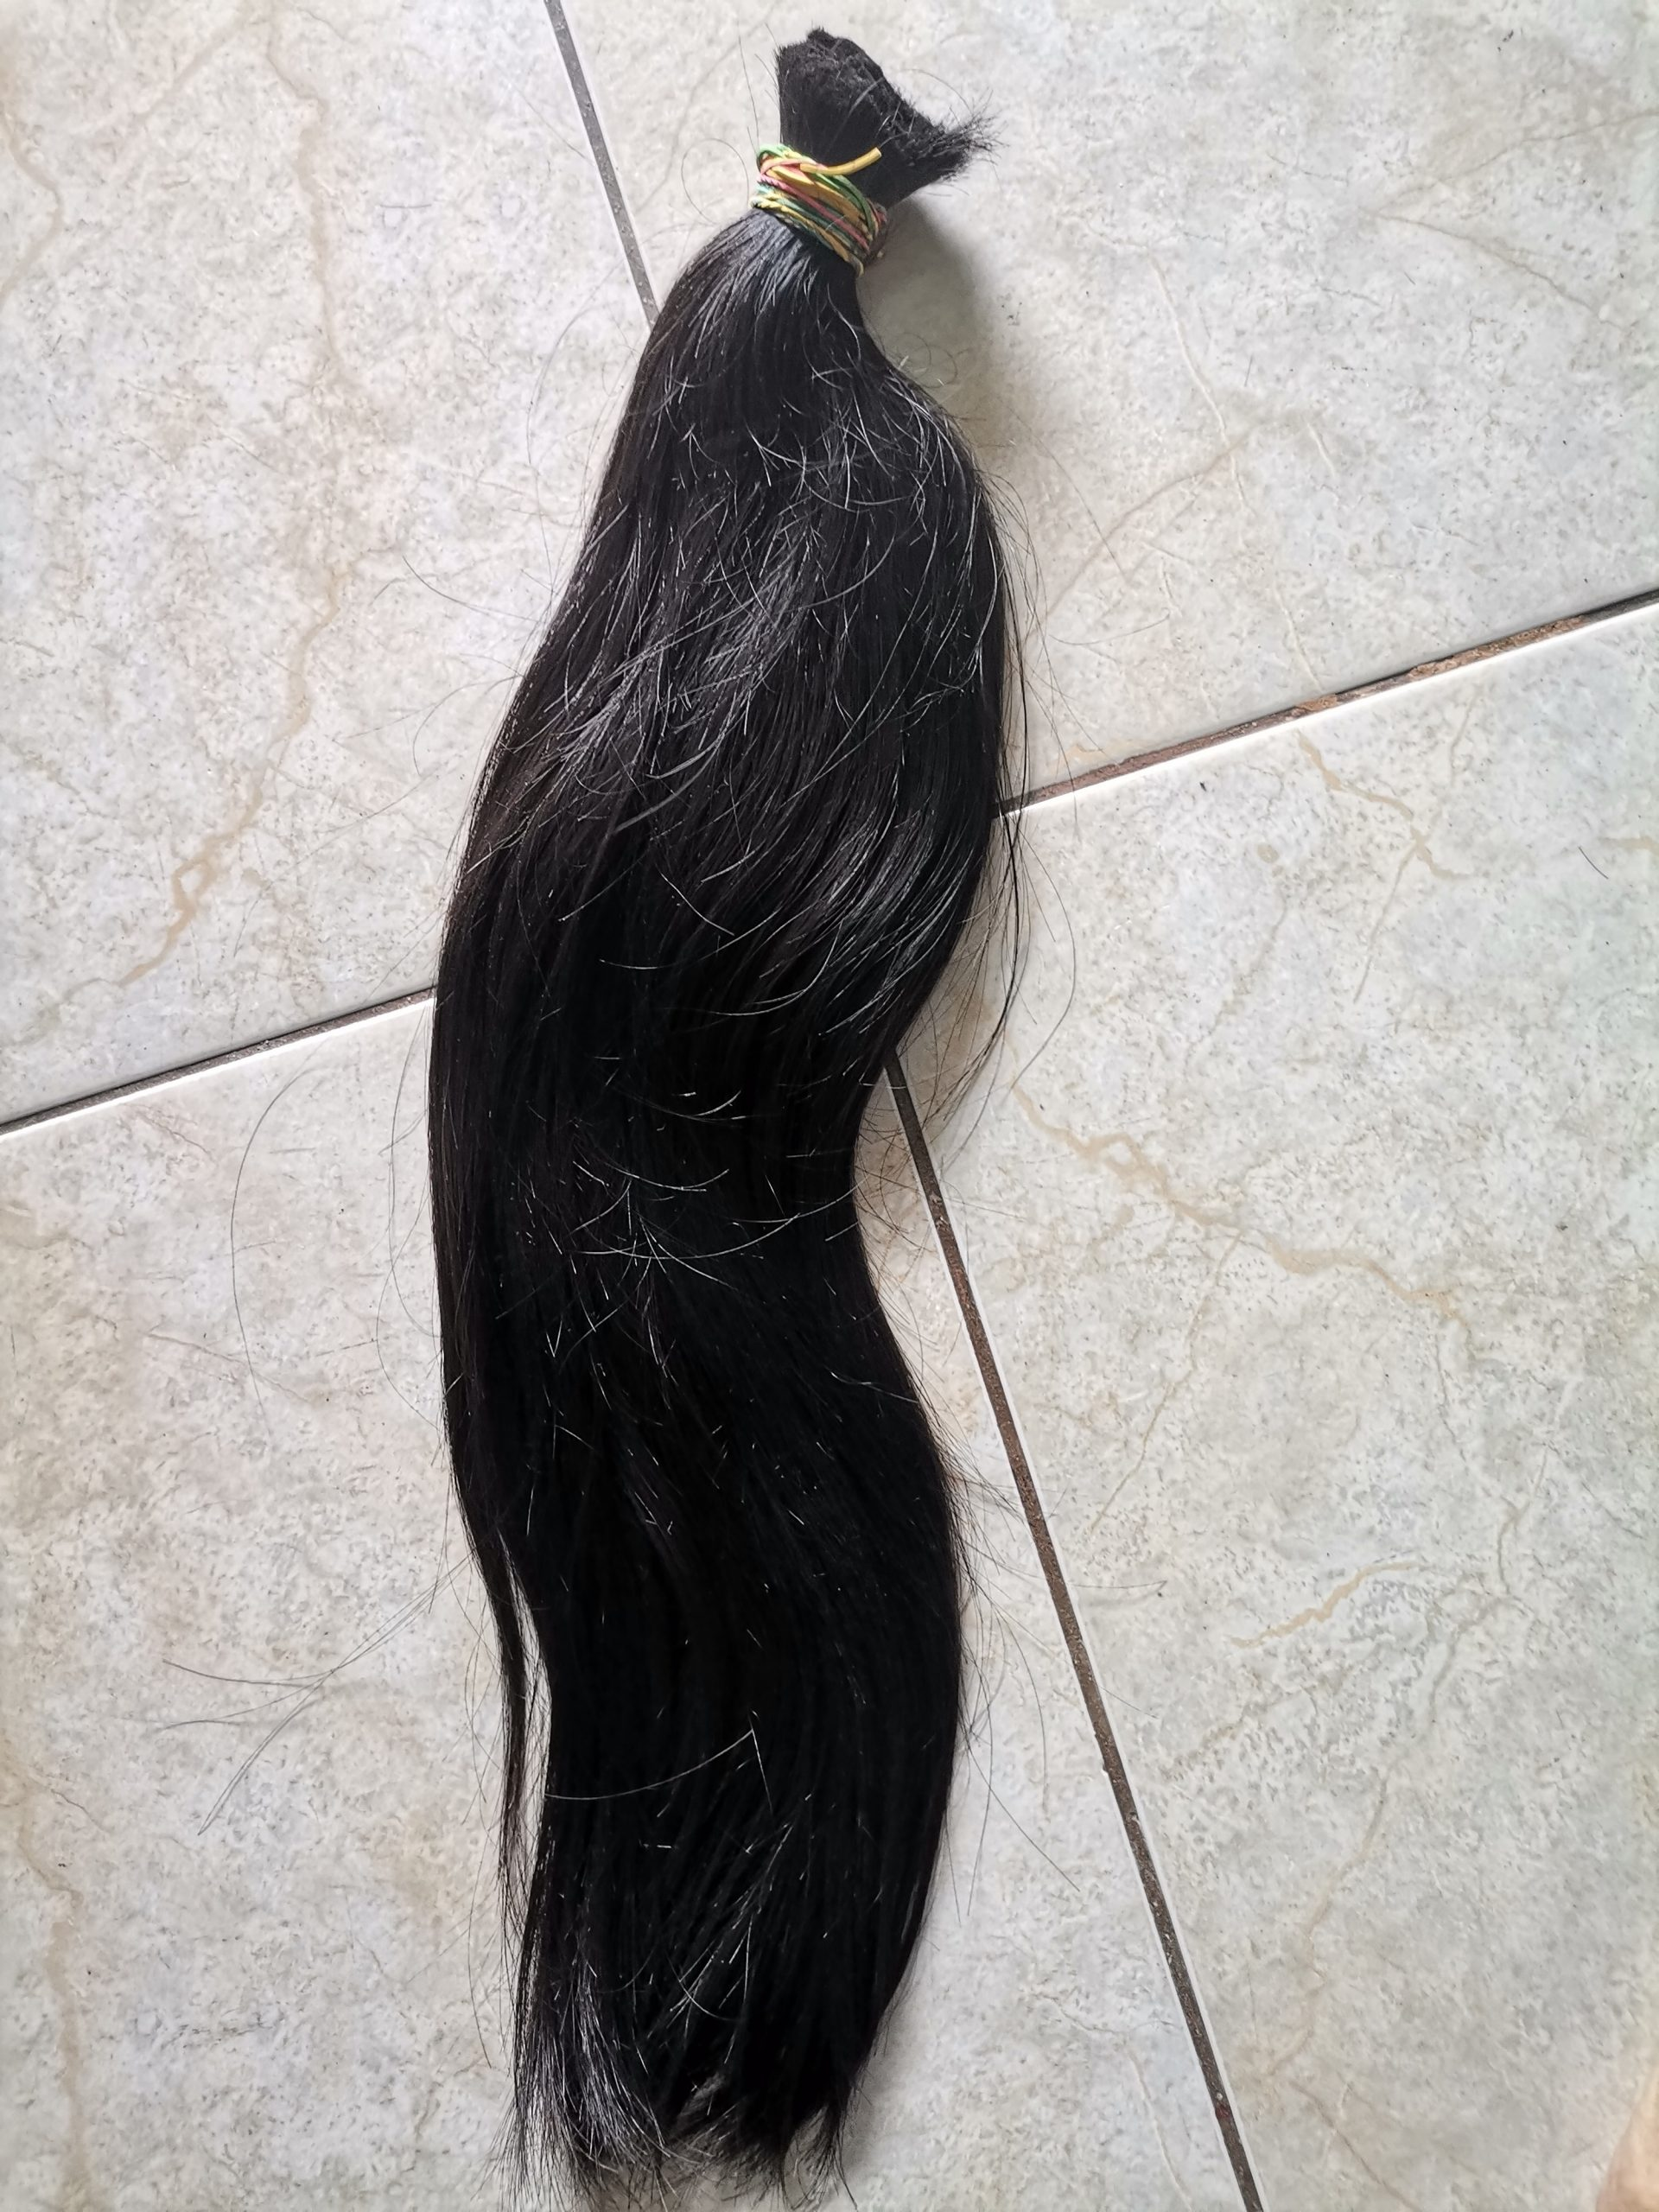 52cm Long black hair